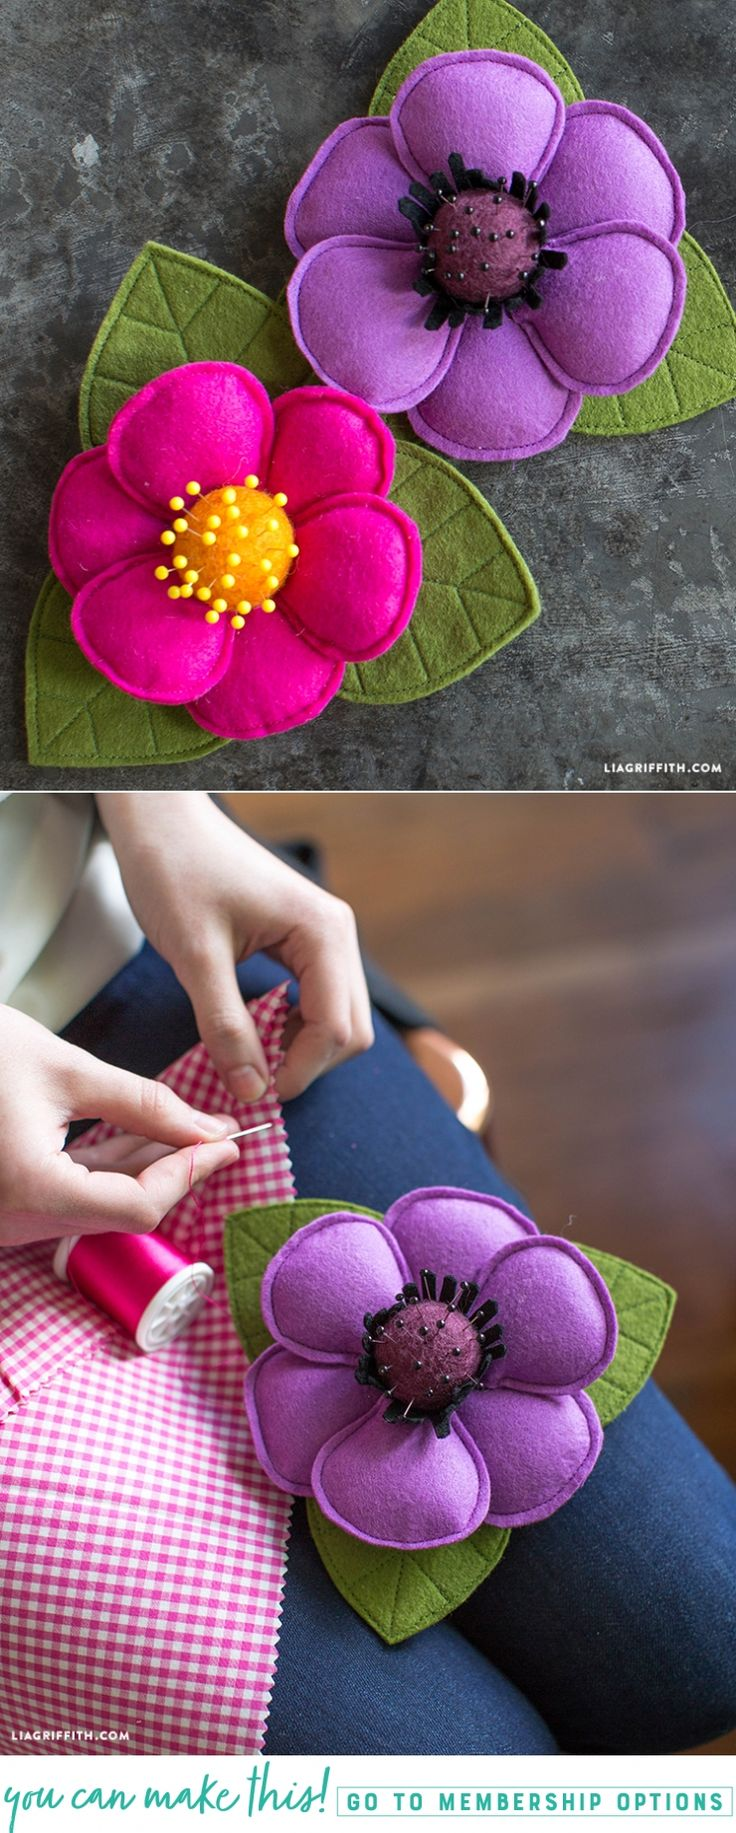 #Feltcraft pattern and tutorial at www.LiaGriffith.com: